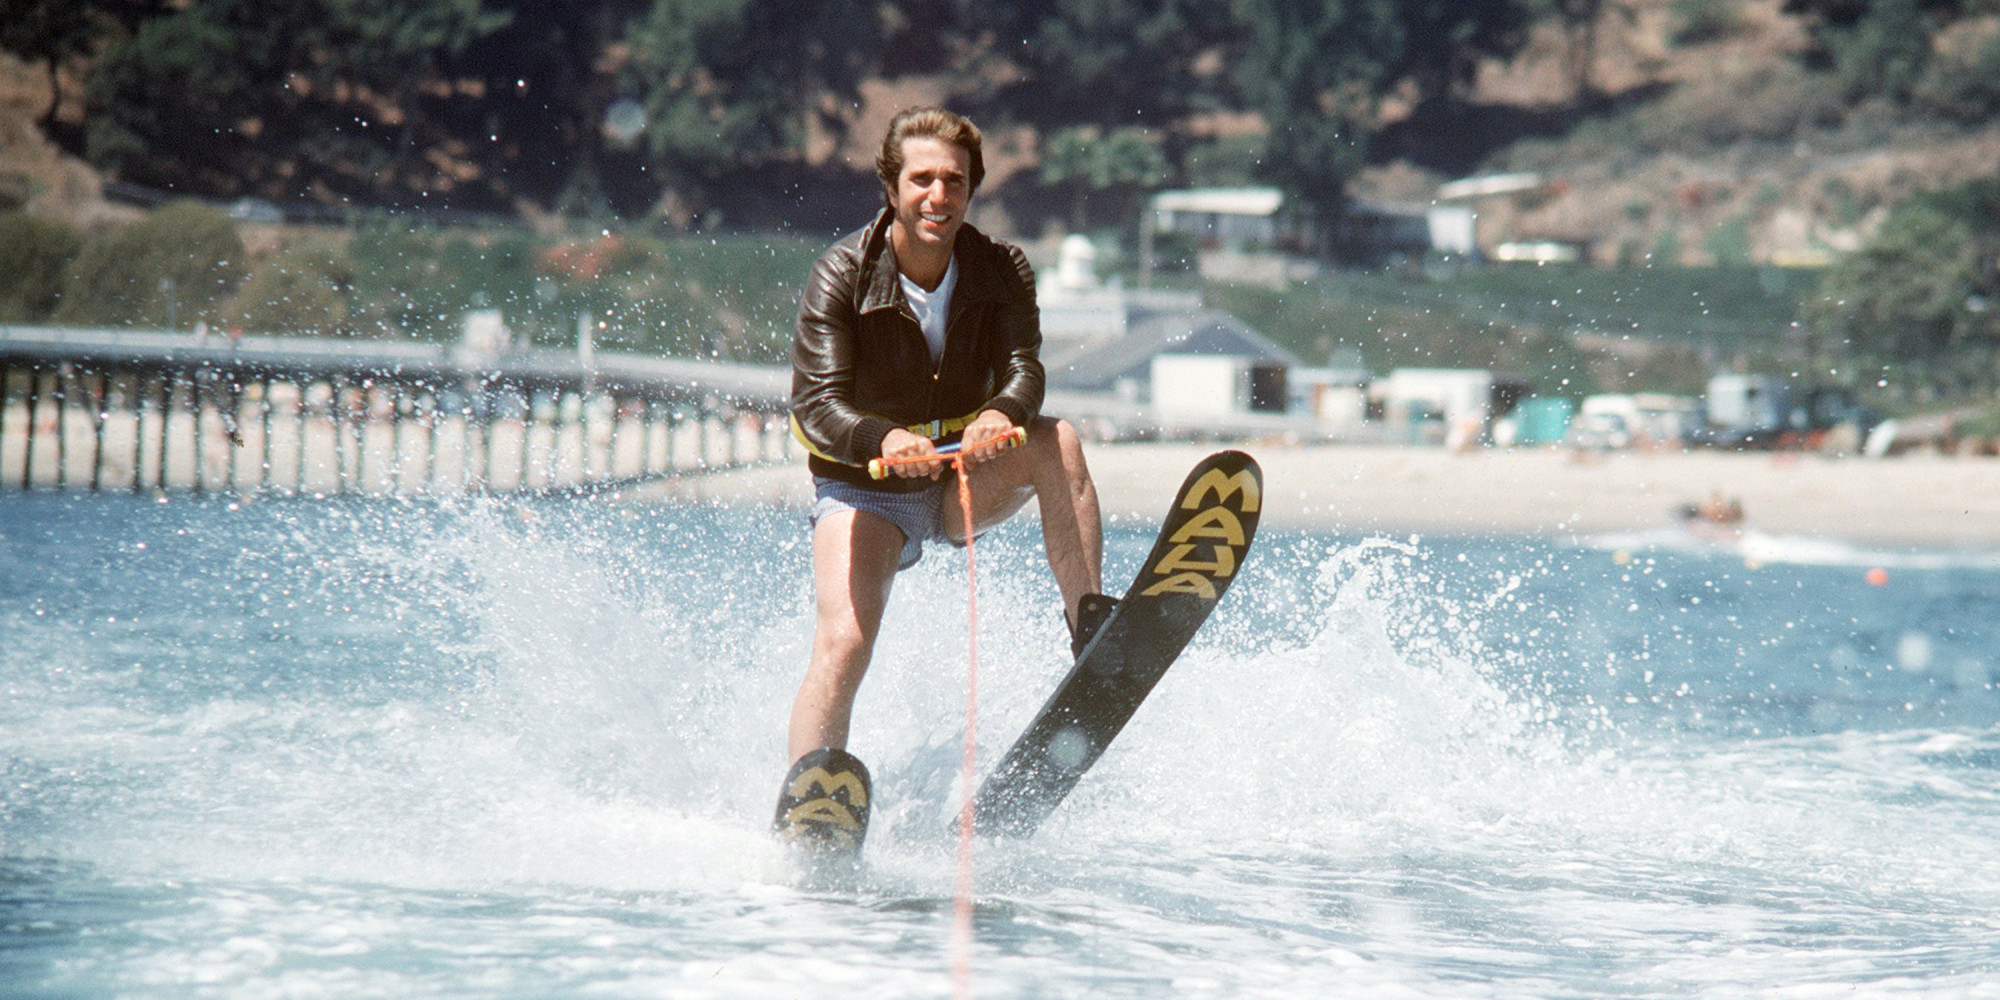 https://i2.wp.com/i.huffpost.com/gen/2926280/images/o-HENRY-WINKLER-JUMP-THE-SHARK-facebook.jpg